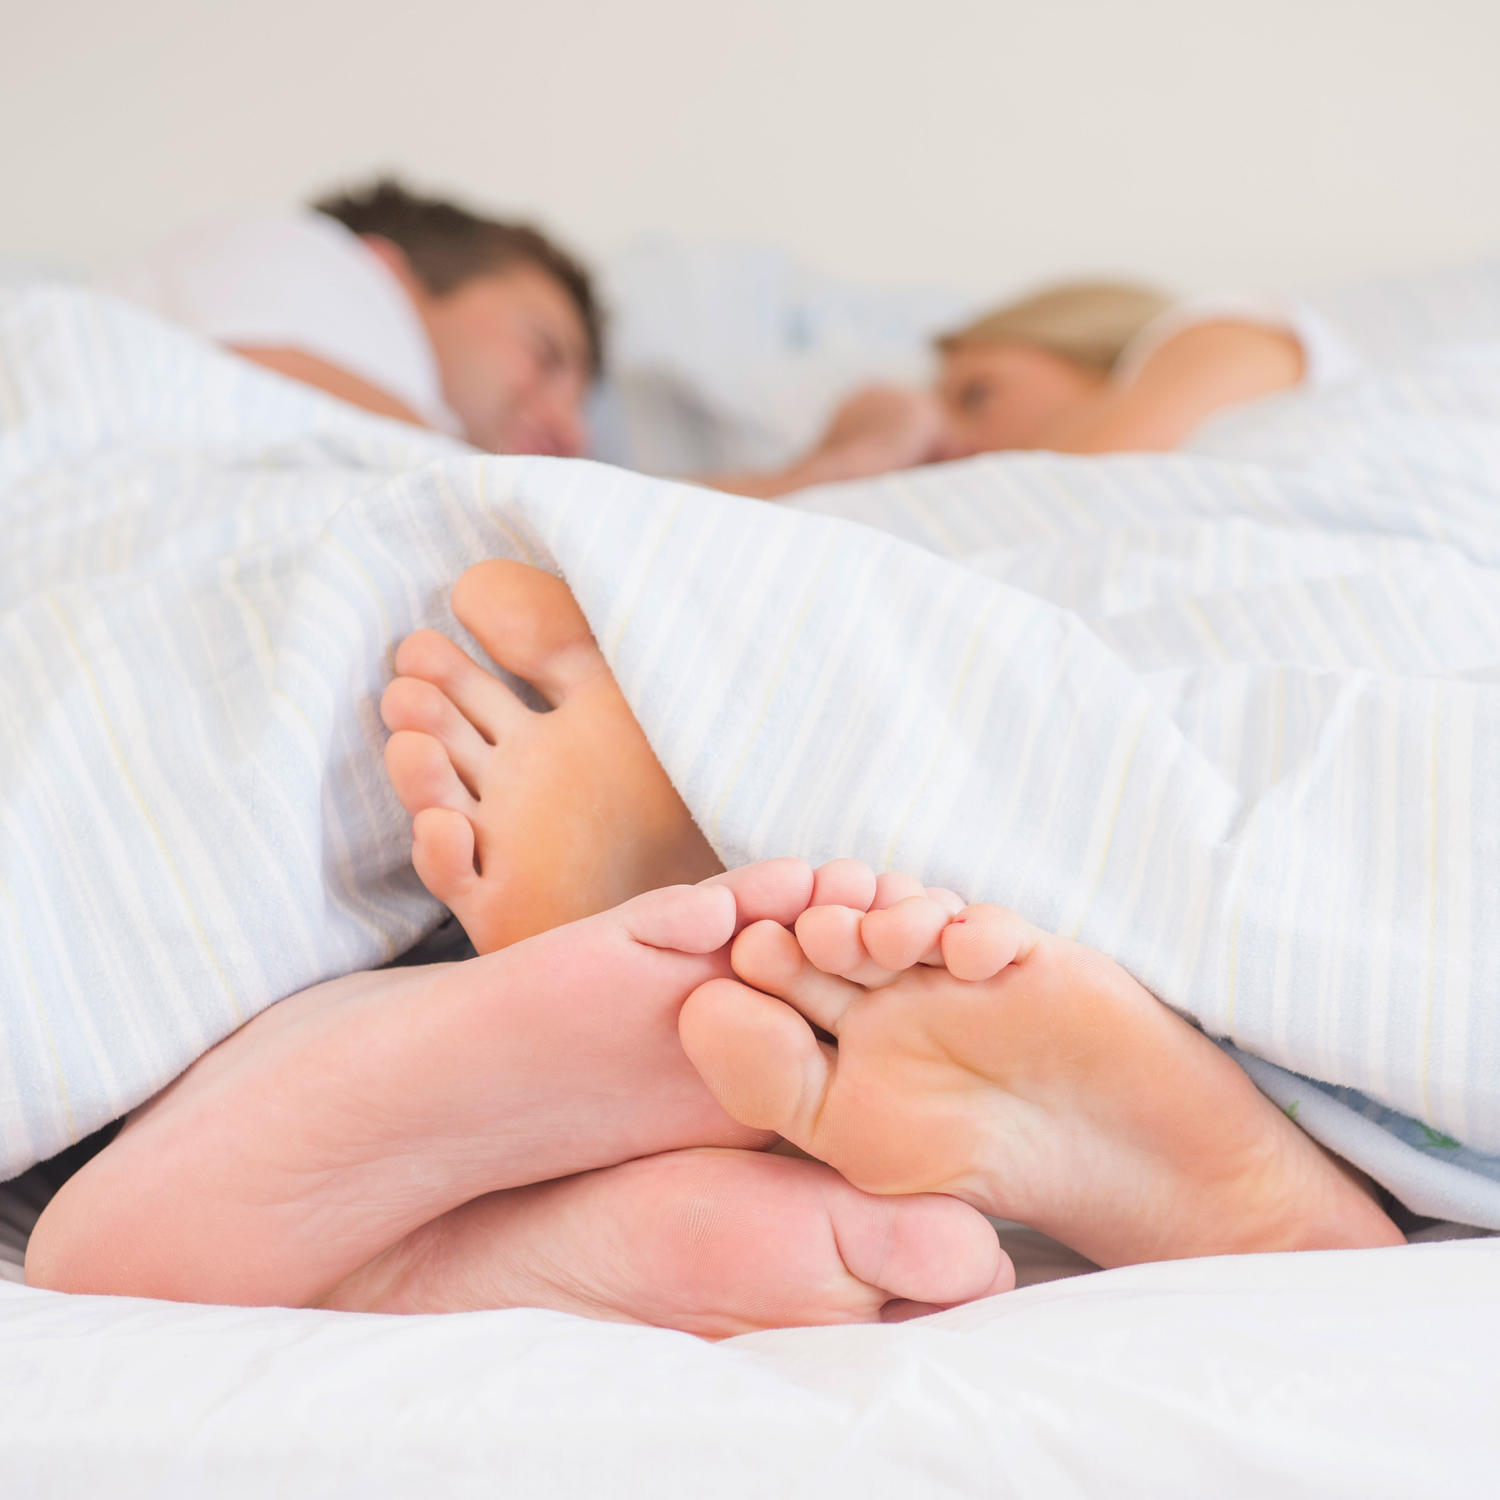 tips to a healthy sex life